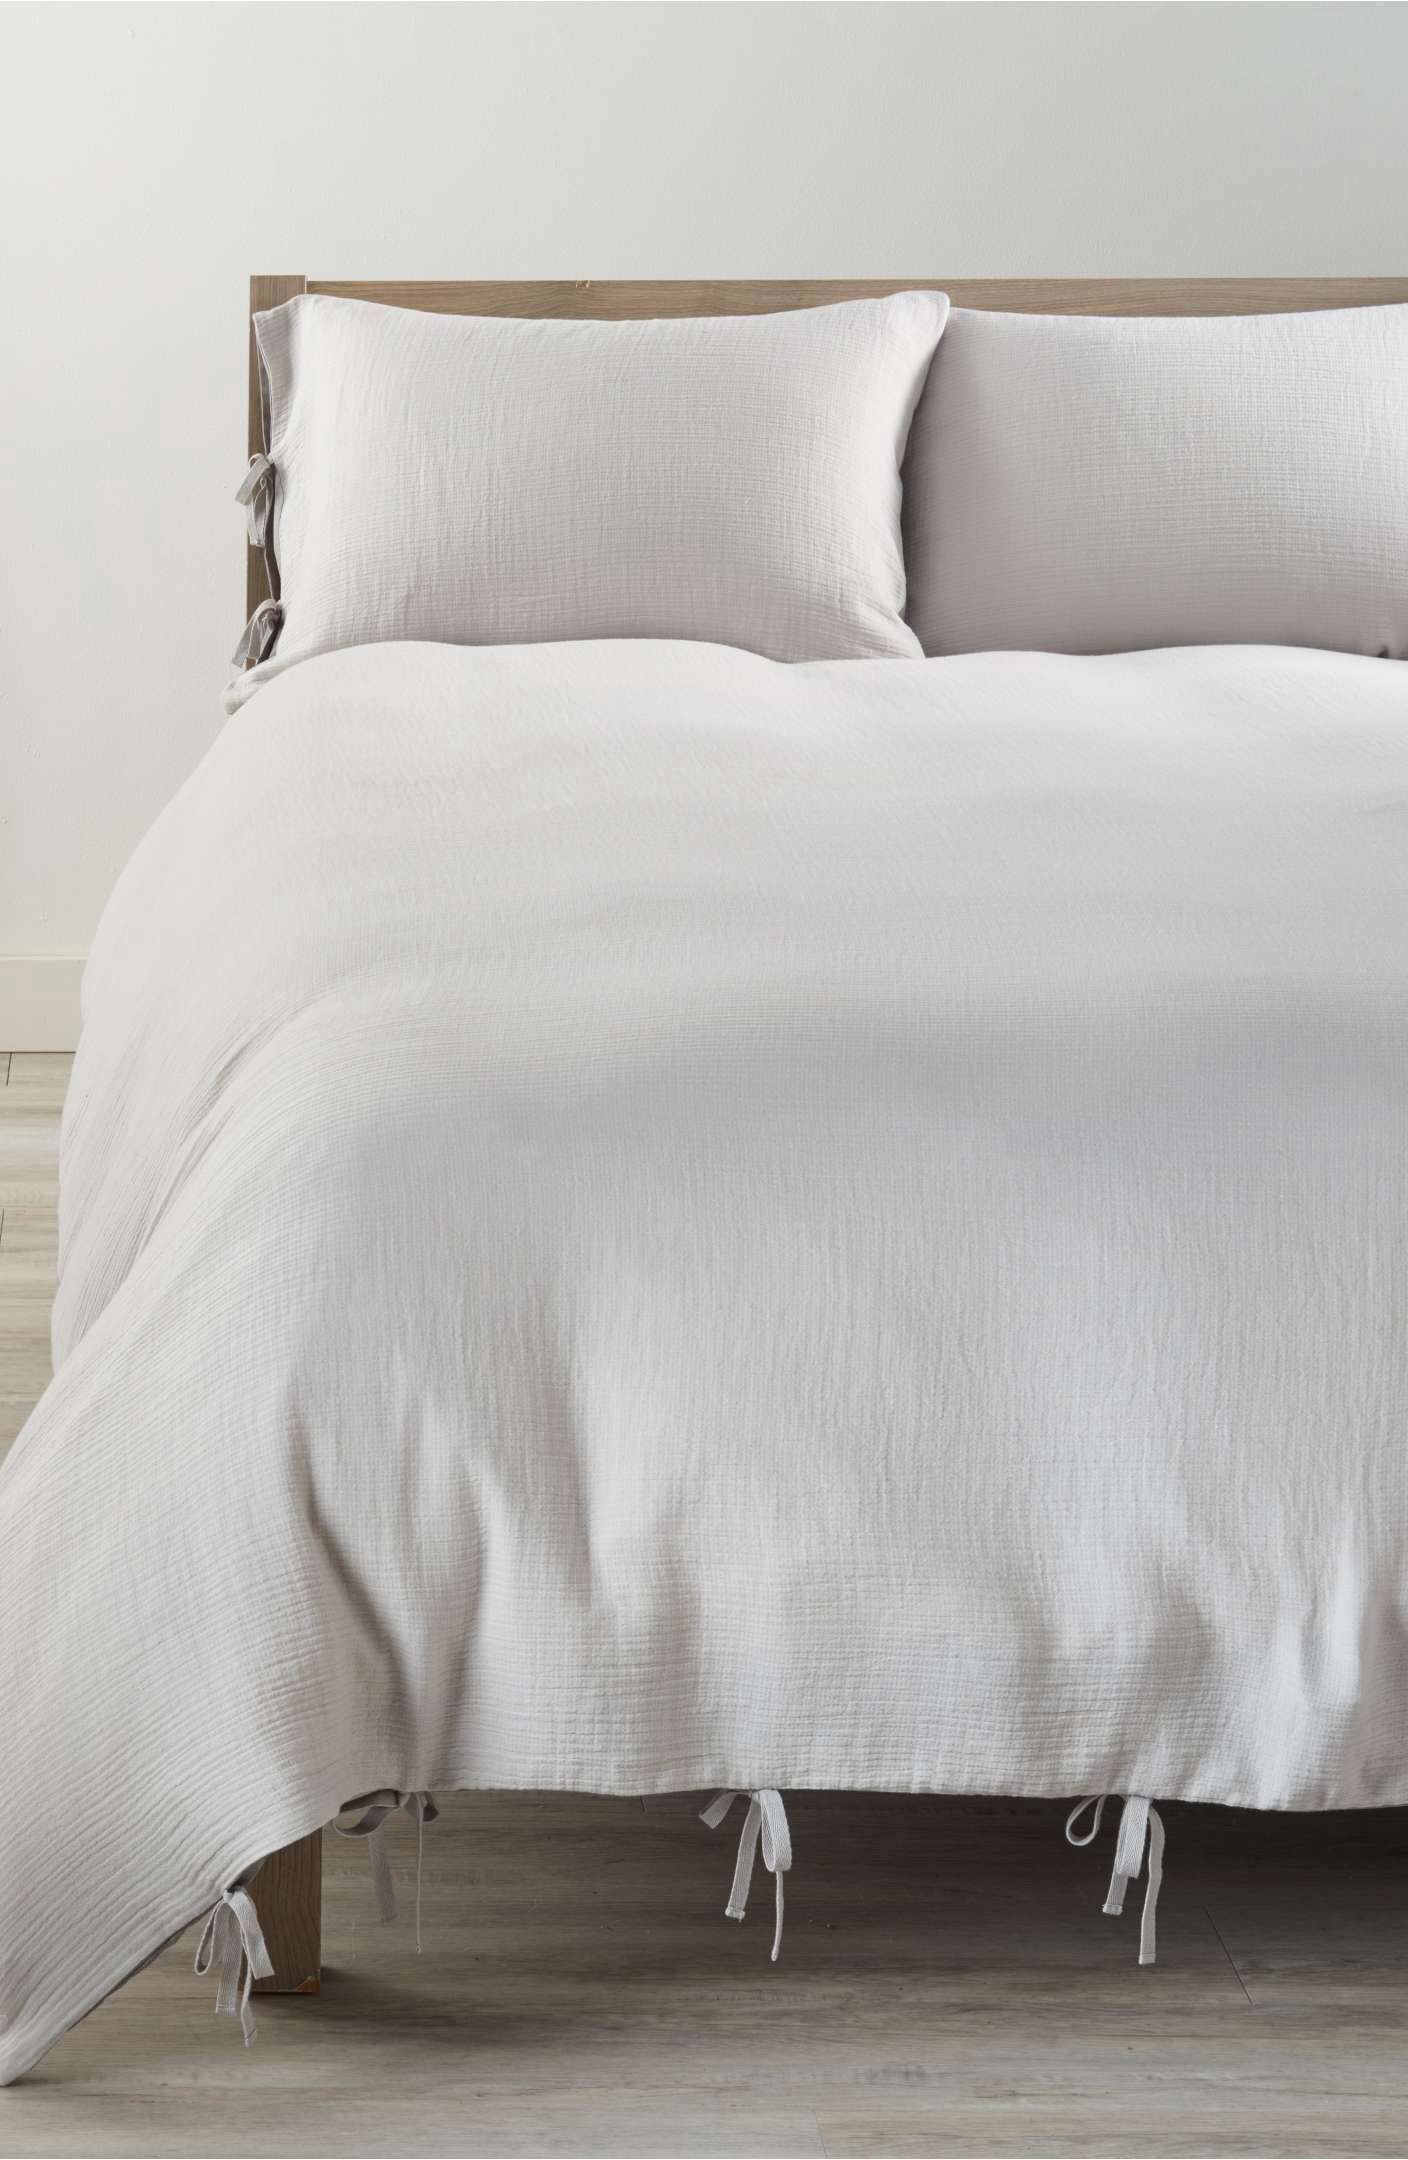 Nordstrom at Home Double Weave Duvet Cover